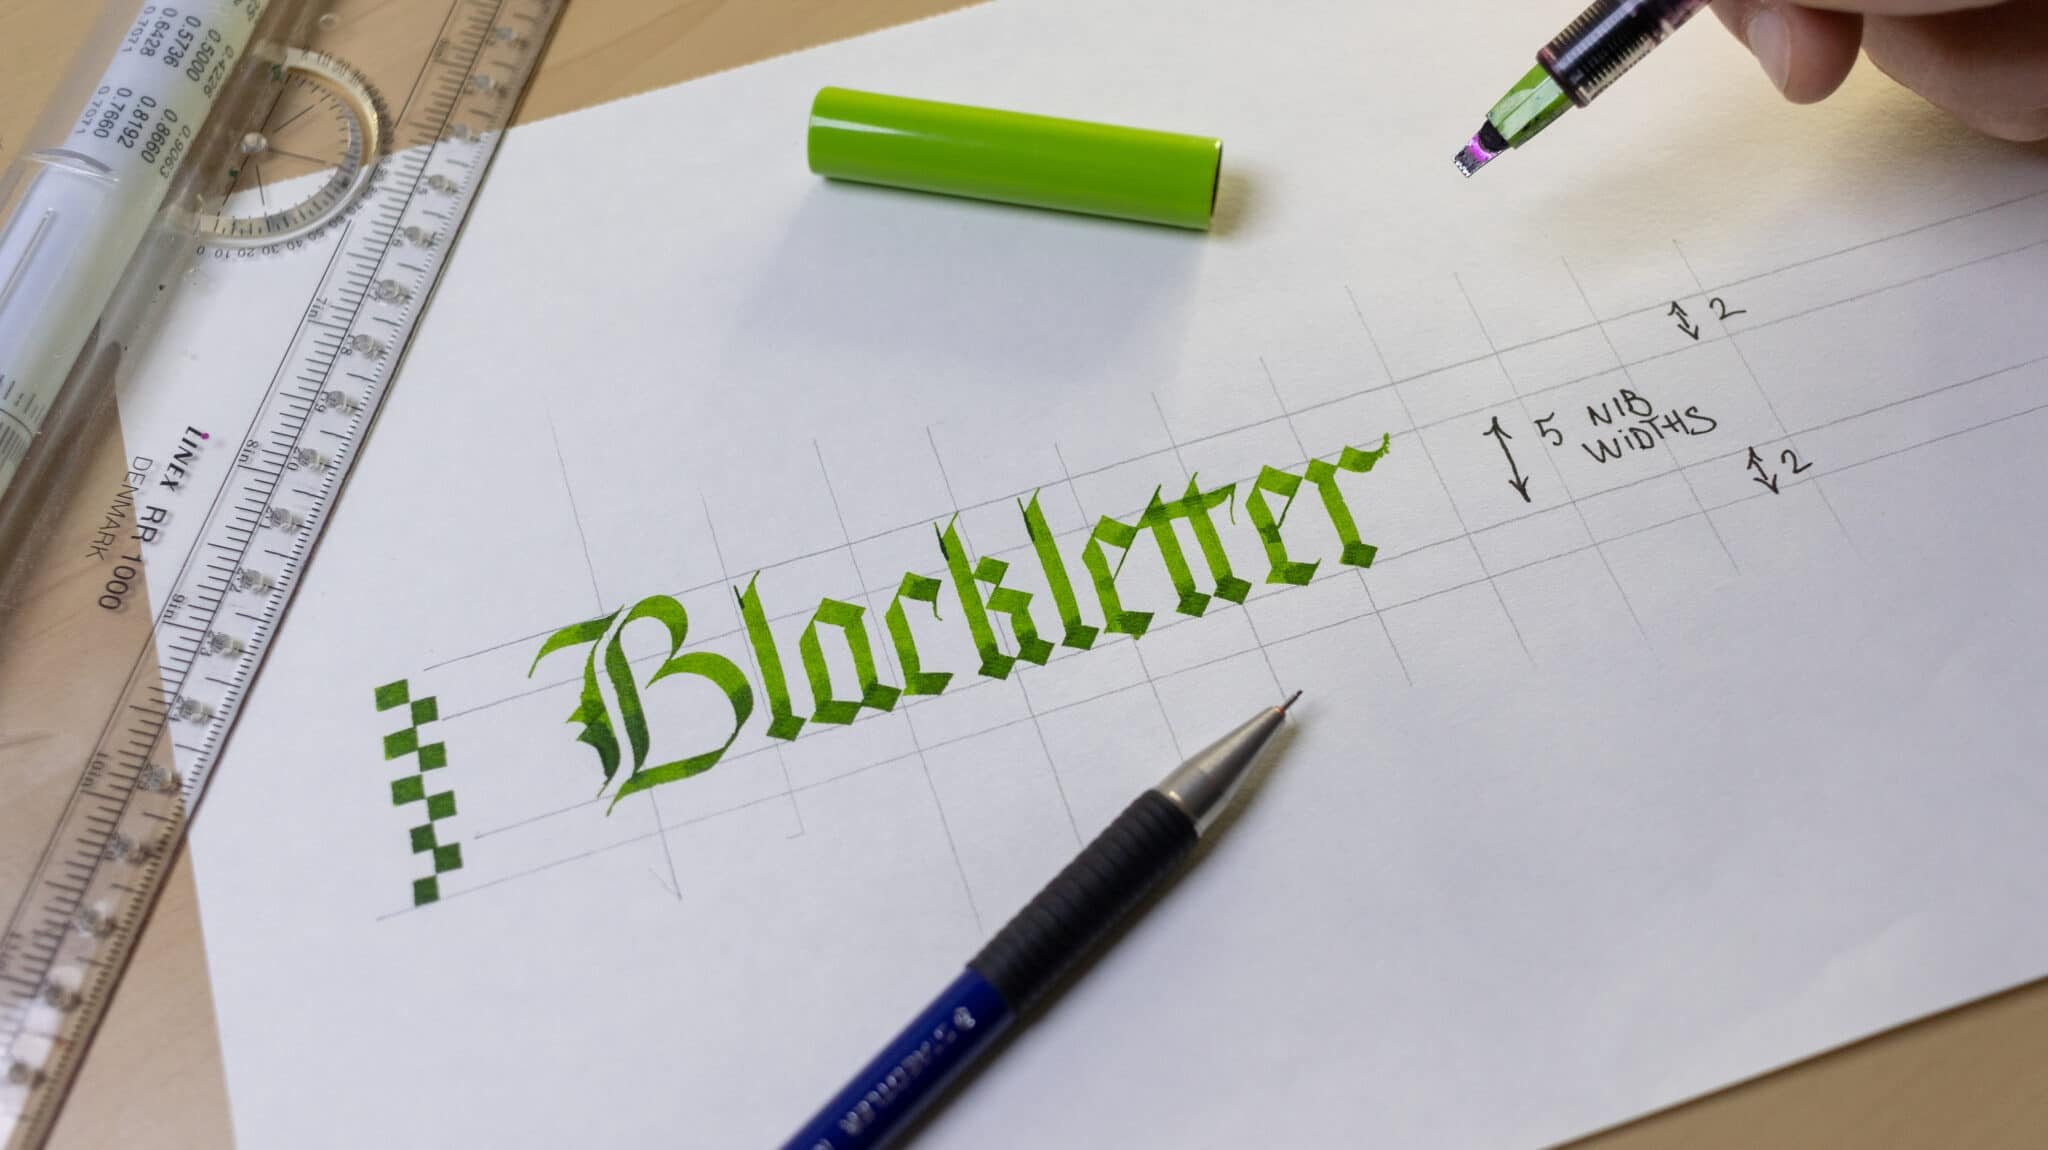 How To Make Calligraphy Guidelines Image 14 - Lettering Daily